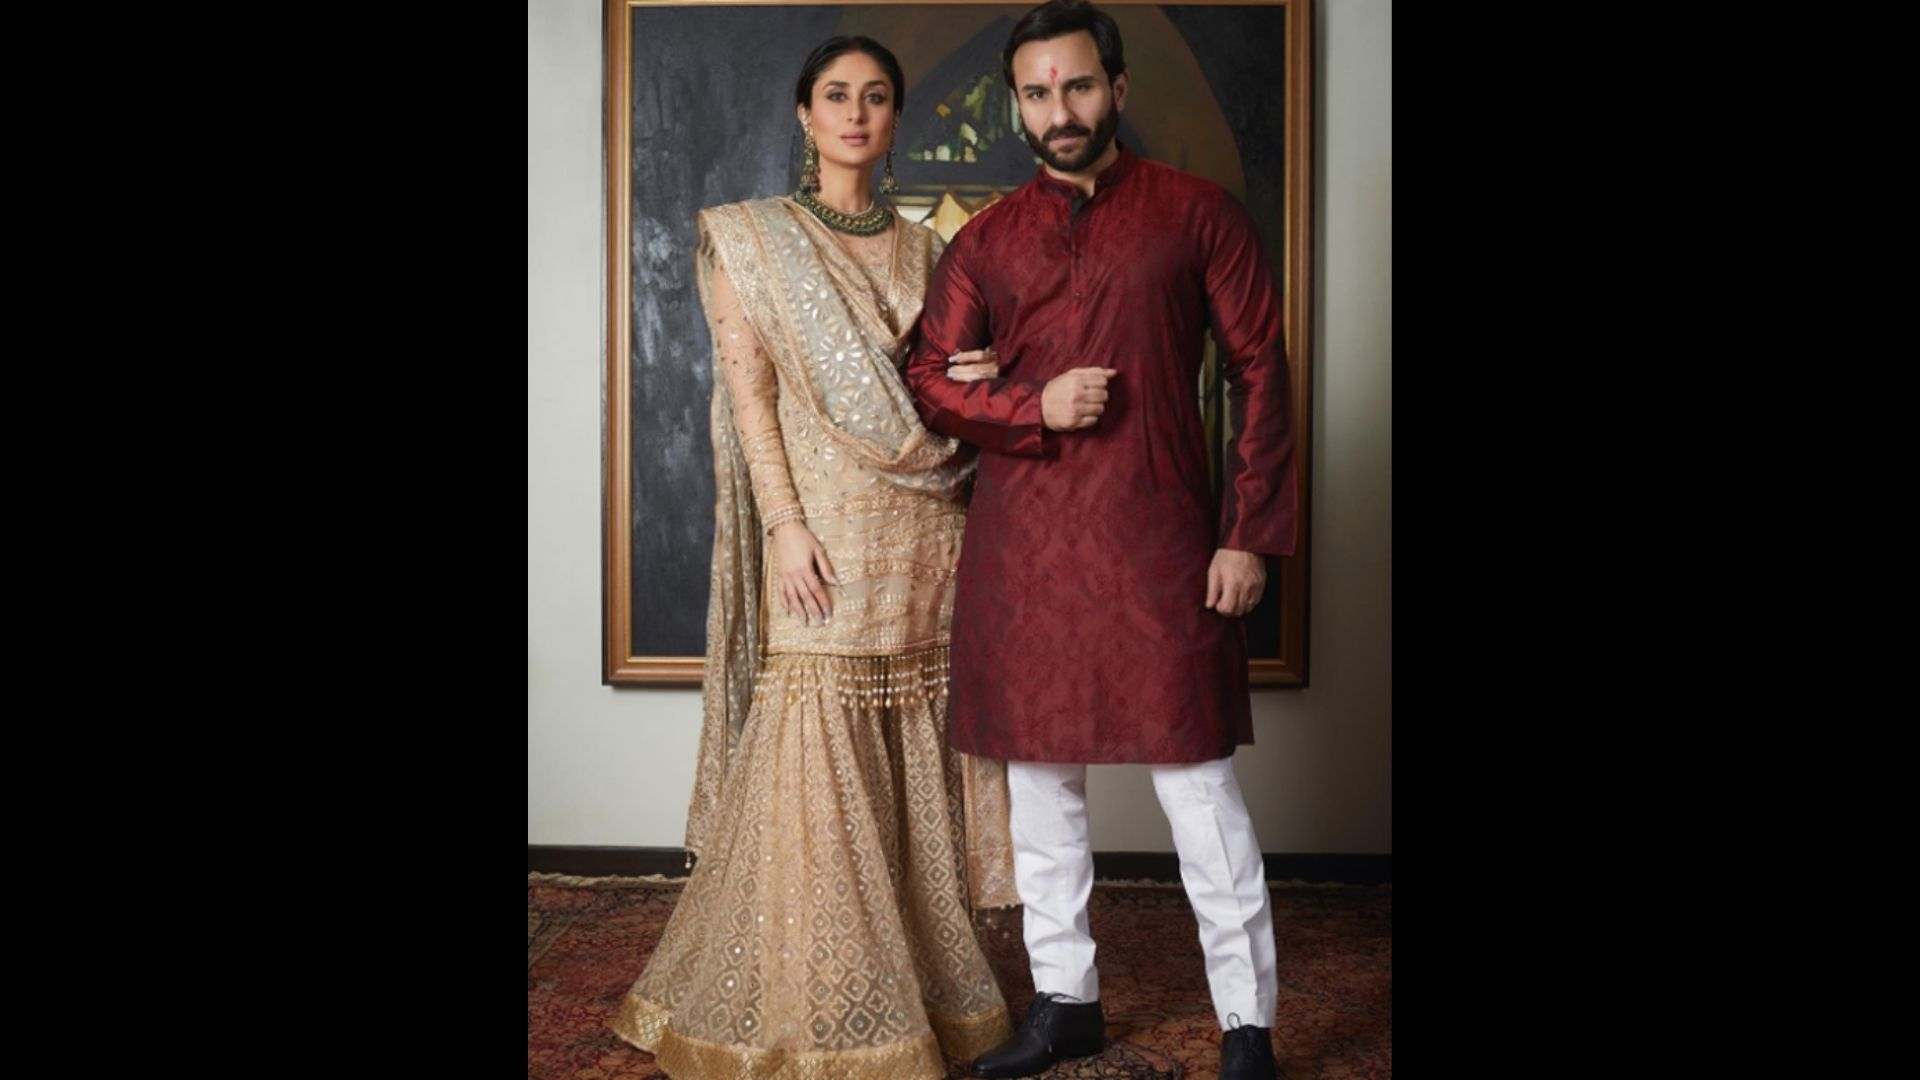 Kareena Kapoor Khan's Latest Festive Video With Husband Saif Ali Khan Is All About Love And How Togetherness Changes Everything